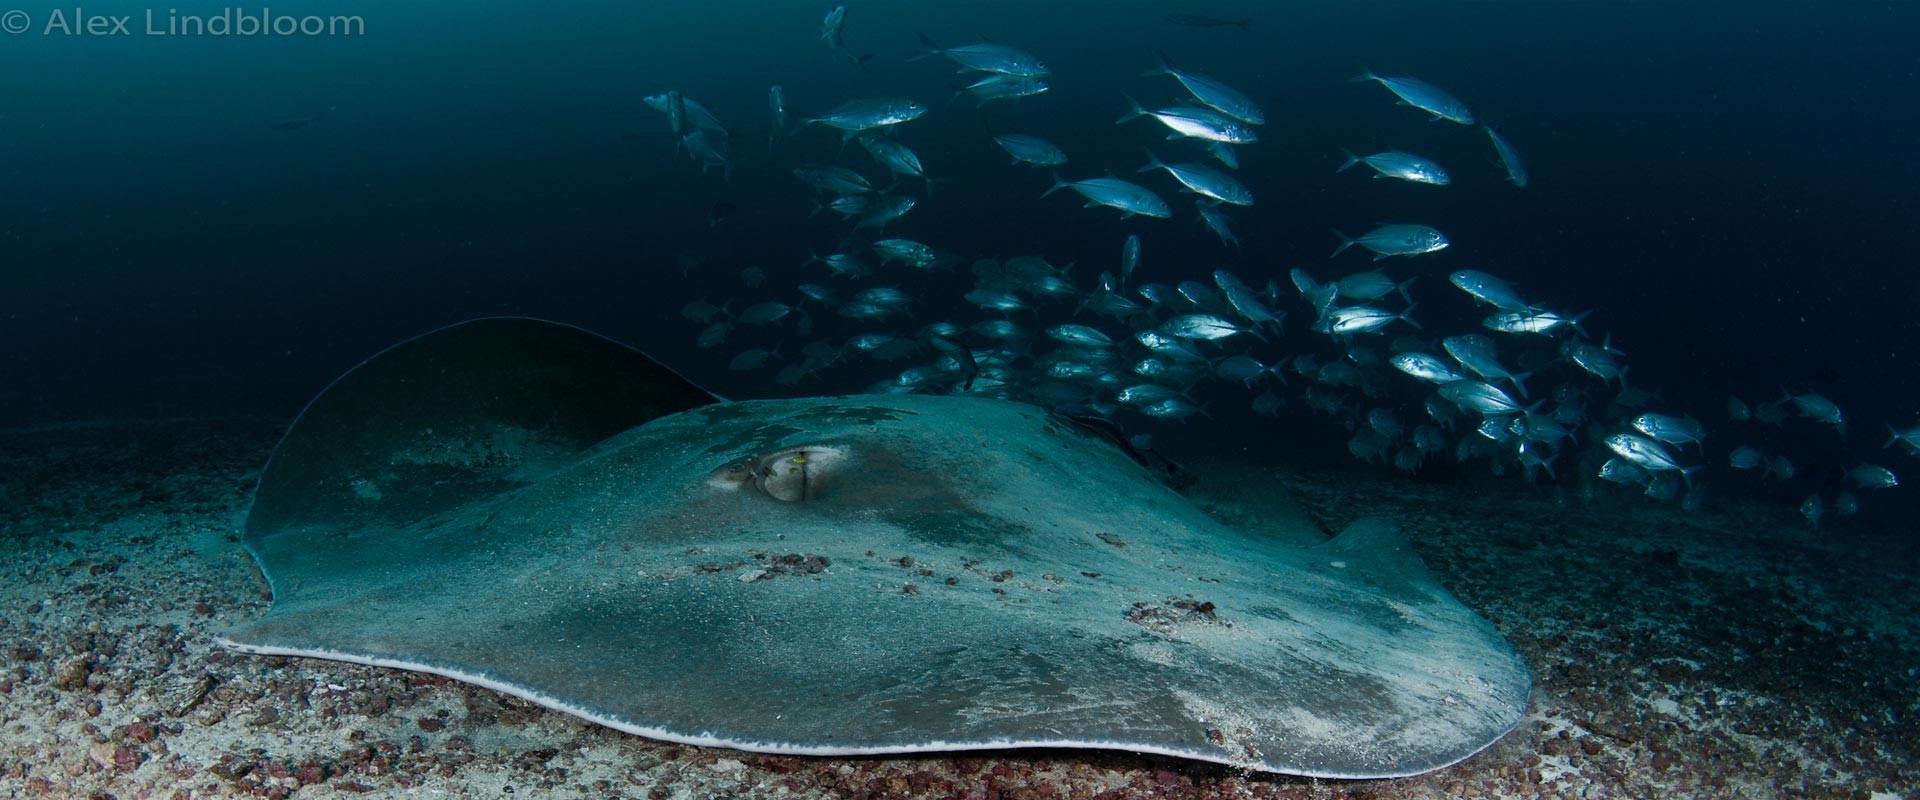 giant-stingray-header